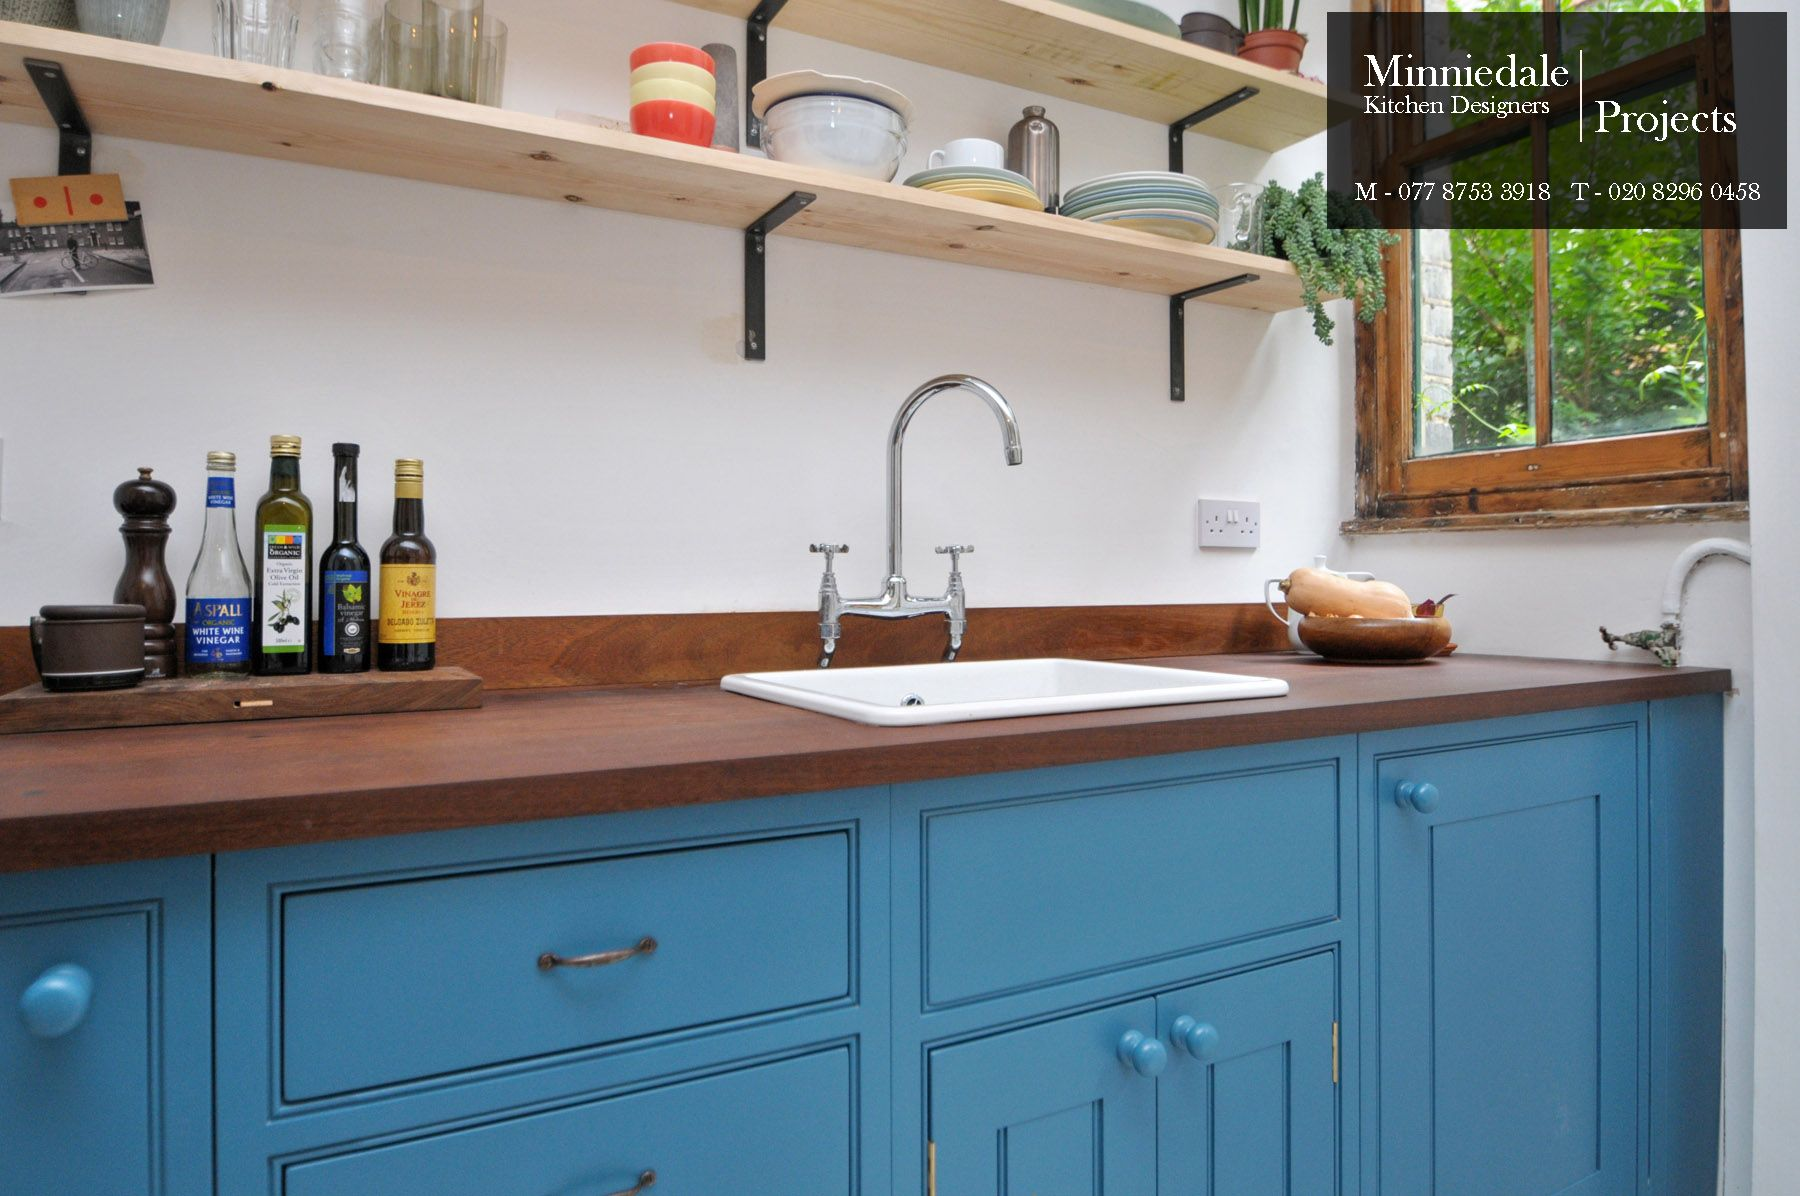 Bespoke Handmade Kitchen sprayed in Papers & Paints Pale Powder Blue ...